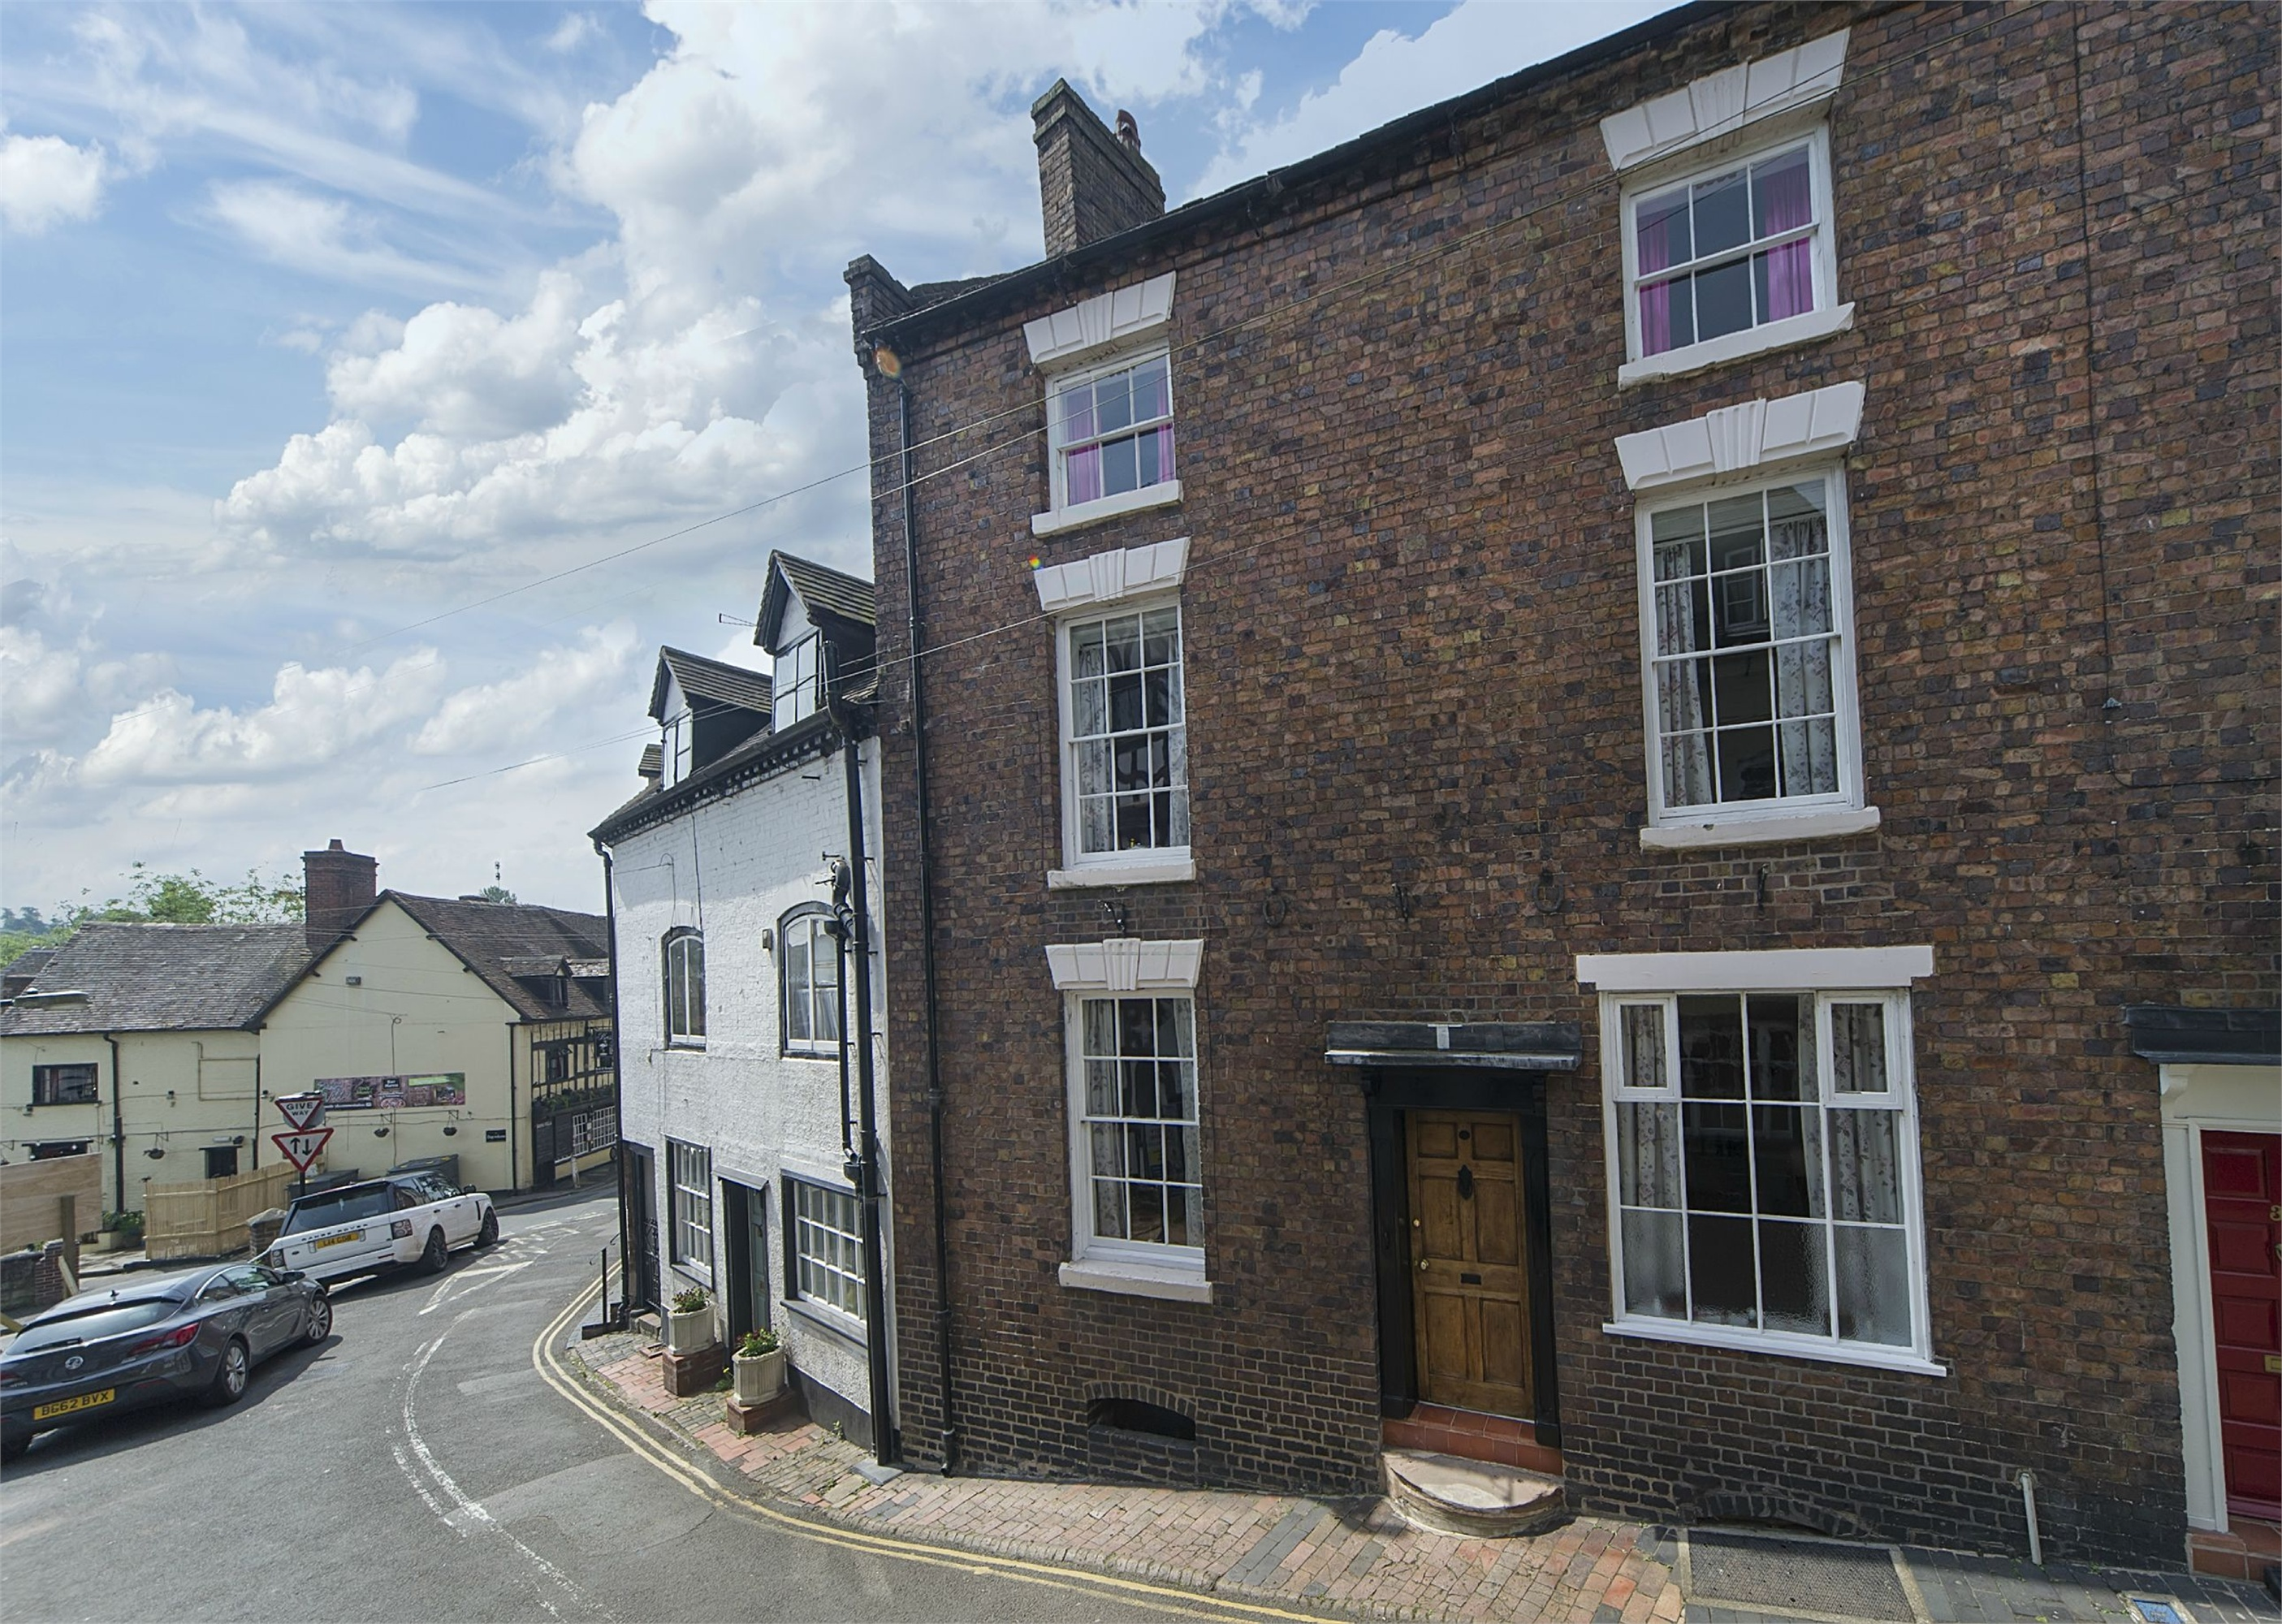 4 Bedrooms Terraced House for sale in 36 Cartway, Bridgnorth, Shropshire, WV16